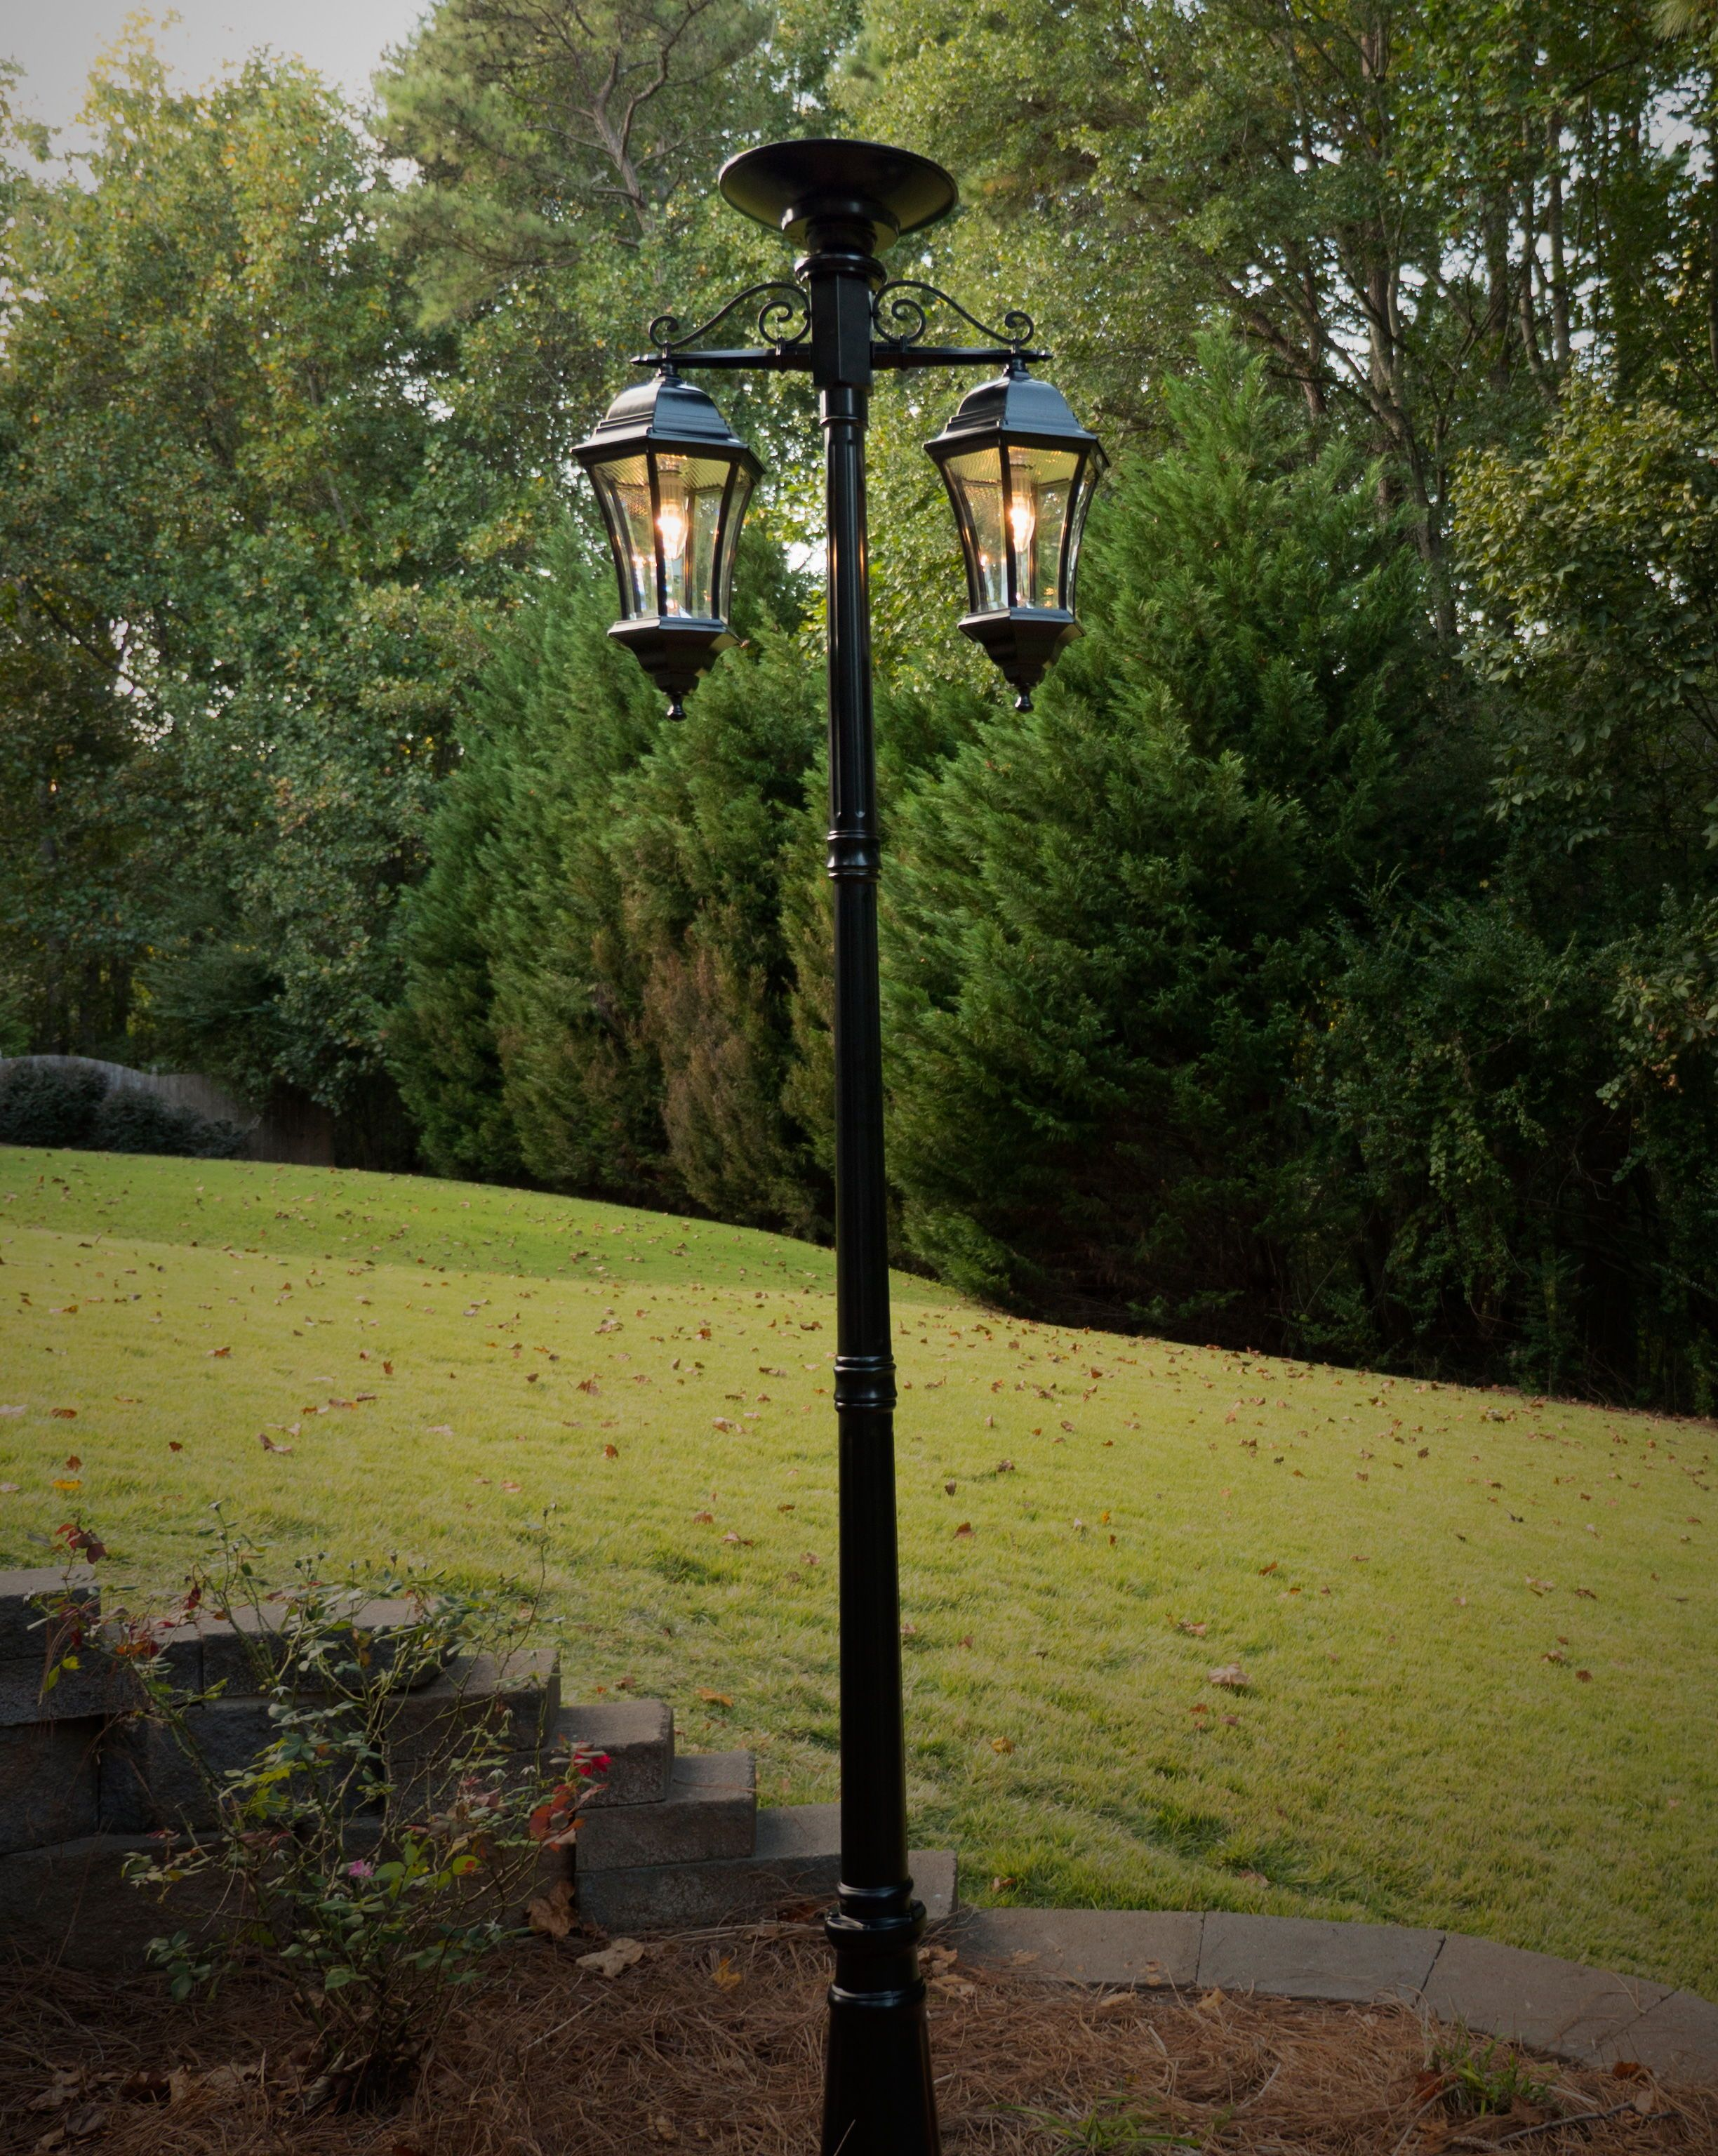 hight resolution of this elegant and sophisticated outdoor solar powered lamp post is sure to improve your curb appeal absolutely no electrical wiring is required